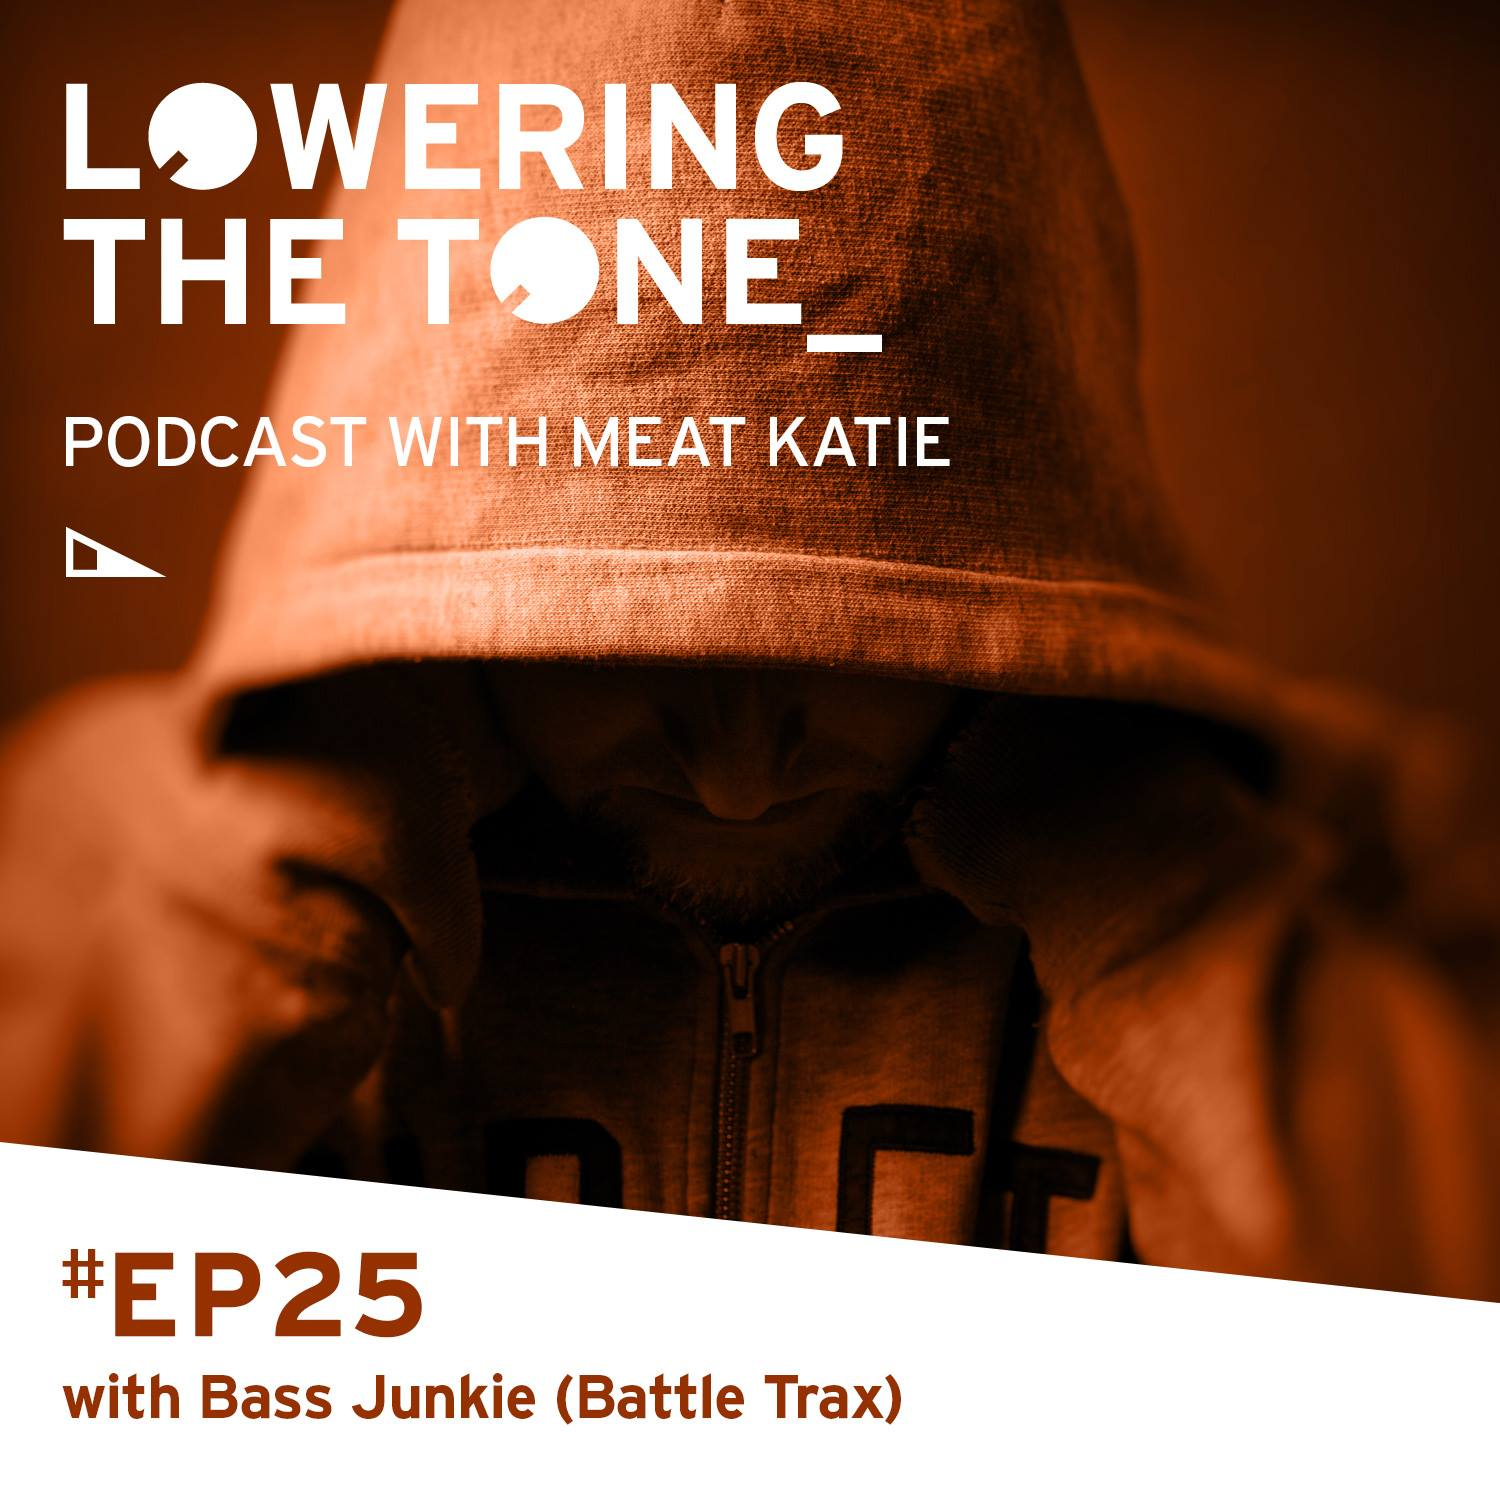 Meat Katie 'Lowering The Tone' Episode 25 Interview with Phil Klein ( Bass Junkie/Battle Trax)